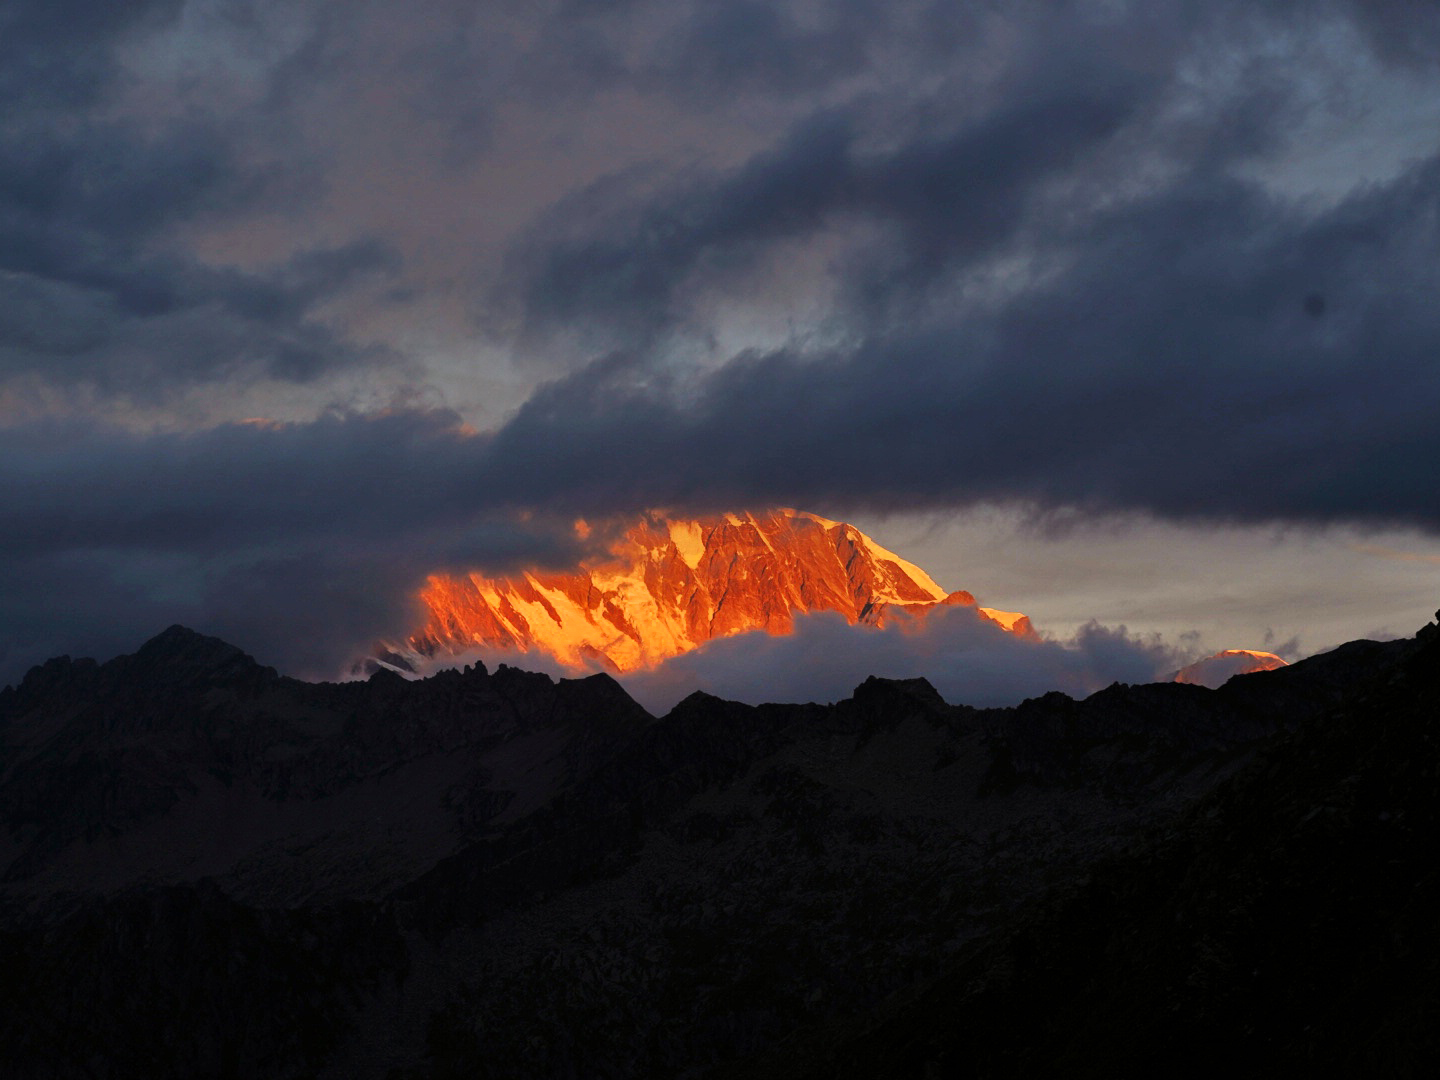 The monte rosa massiv as seen through the clouds at sunrise.